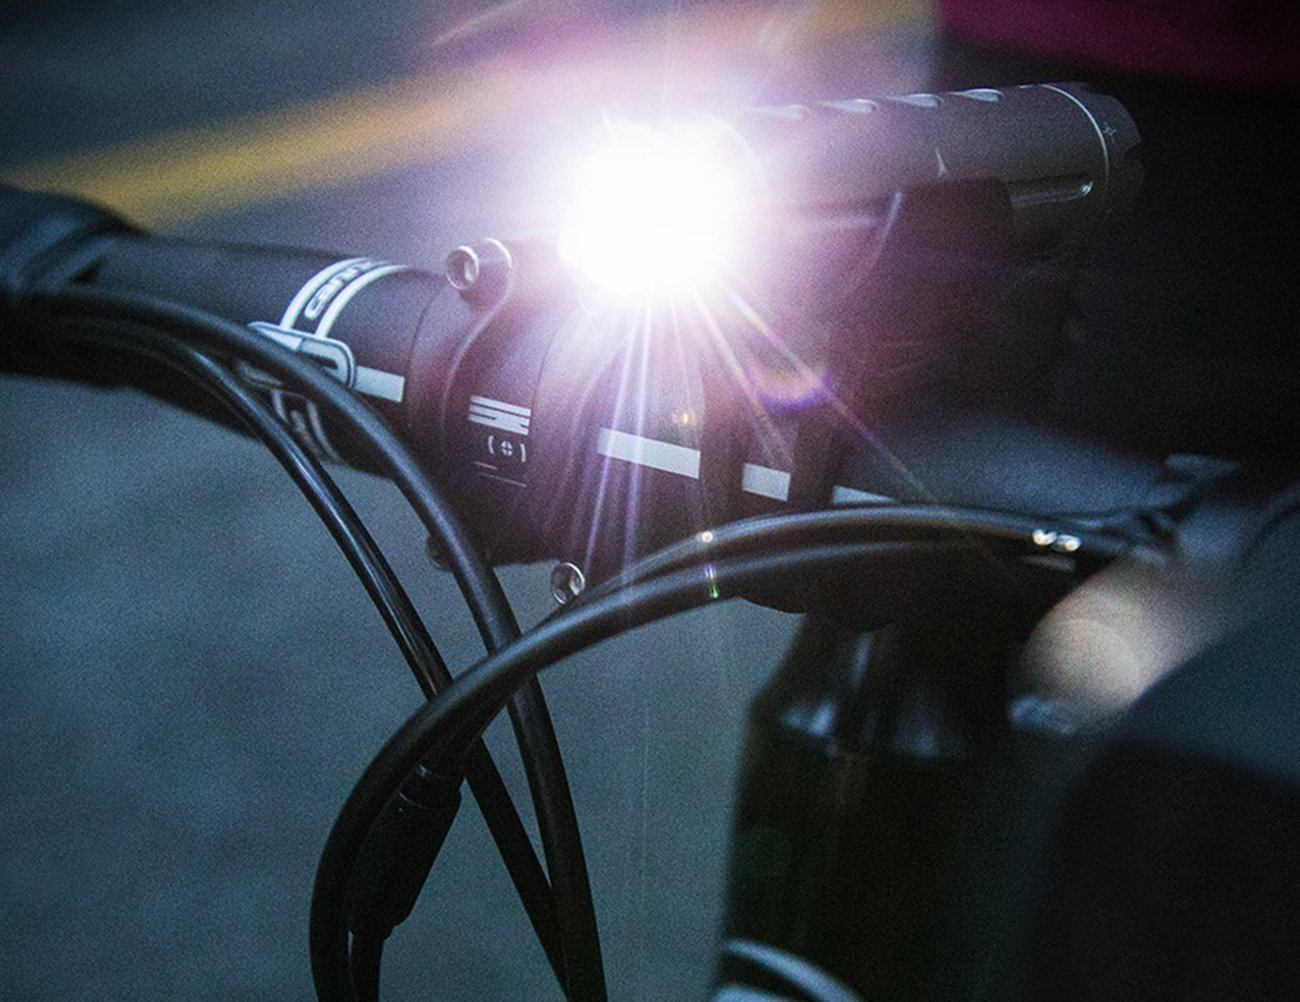 Fabric+300-Lumen+Bike+Light